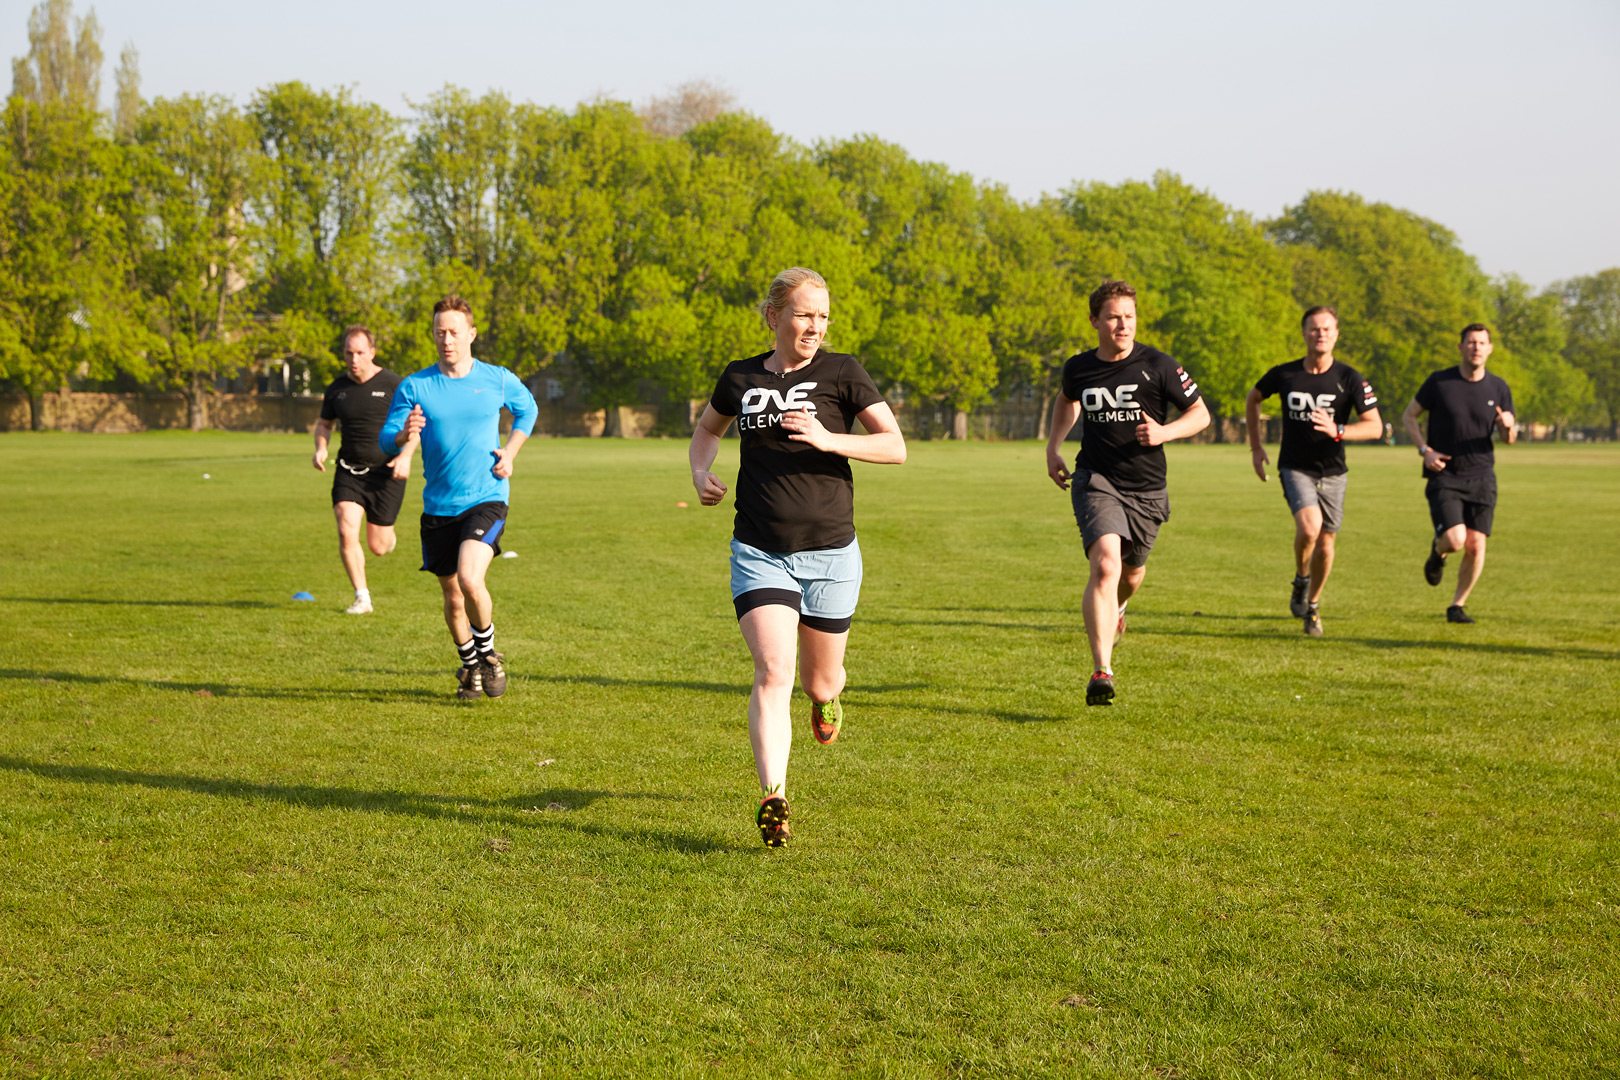 Social Fitness Movement One Element Comes to Clapham Common